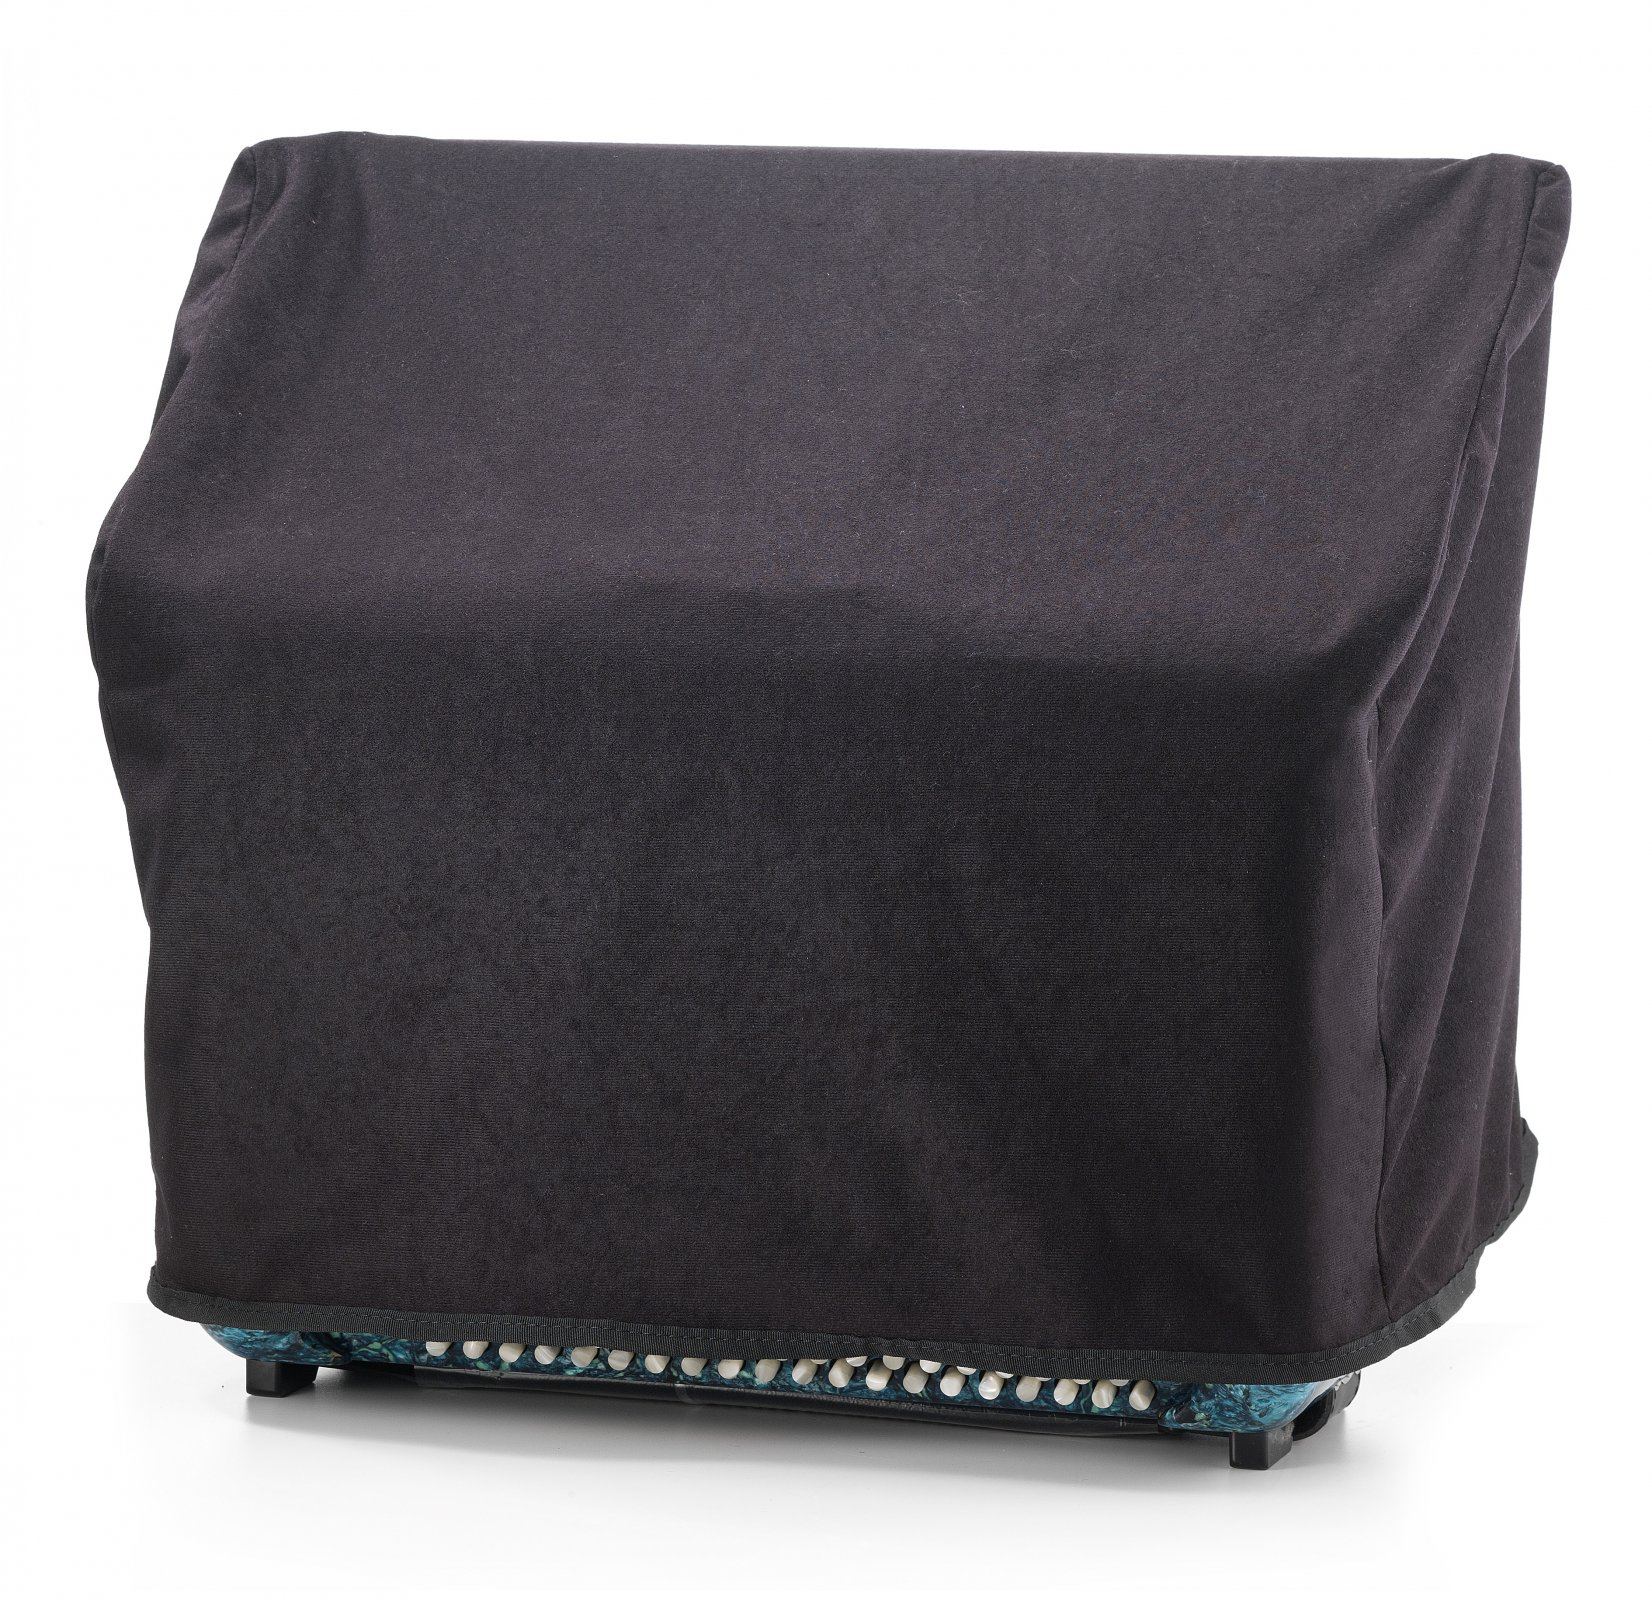 NEW Fuselli Velour Dust Cover for Accordion - Small 17.5 x 17 x 9